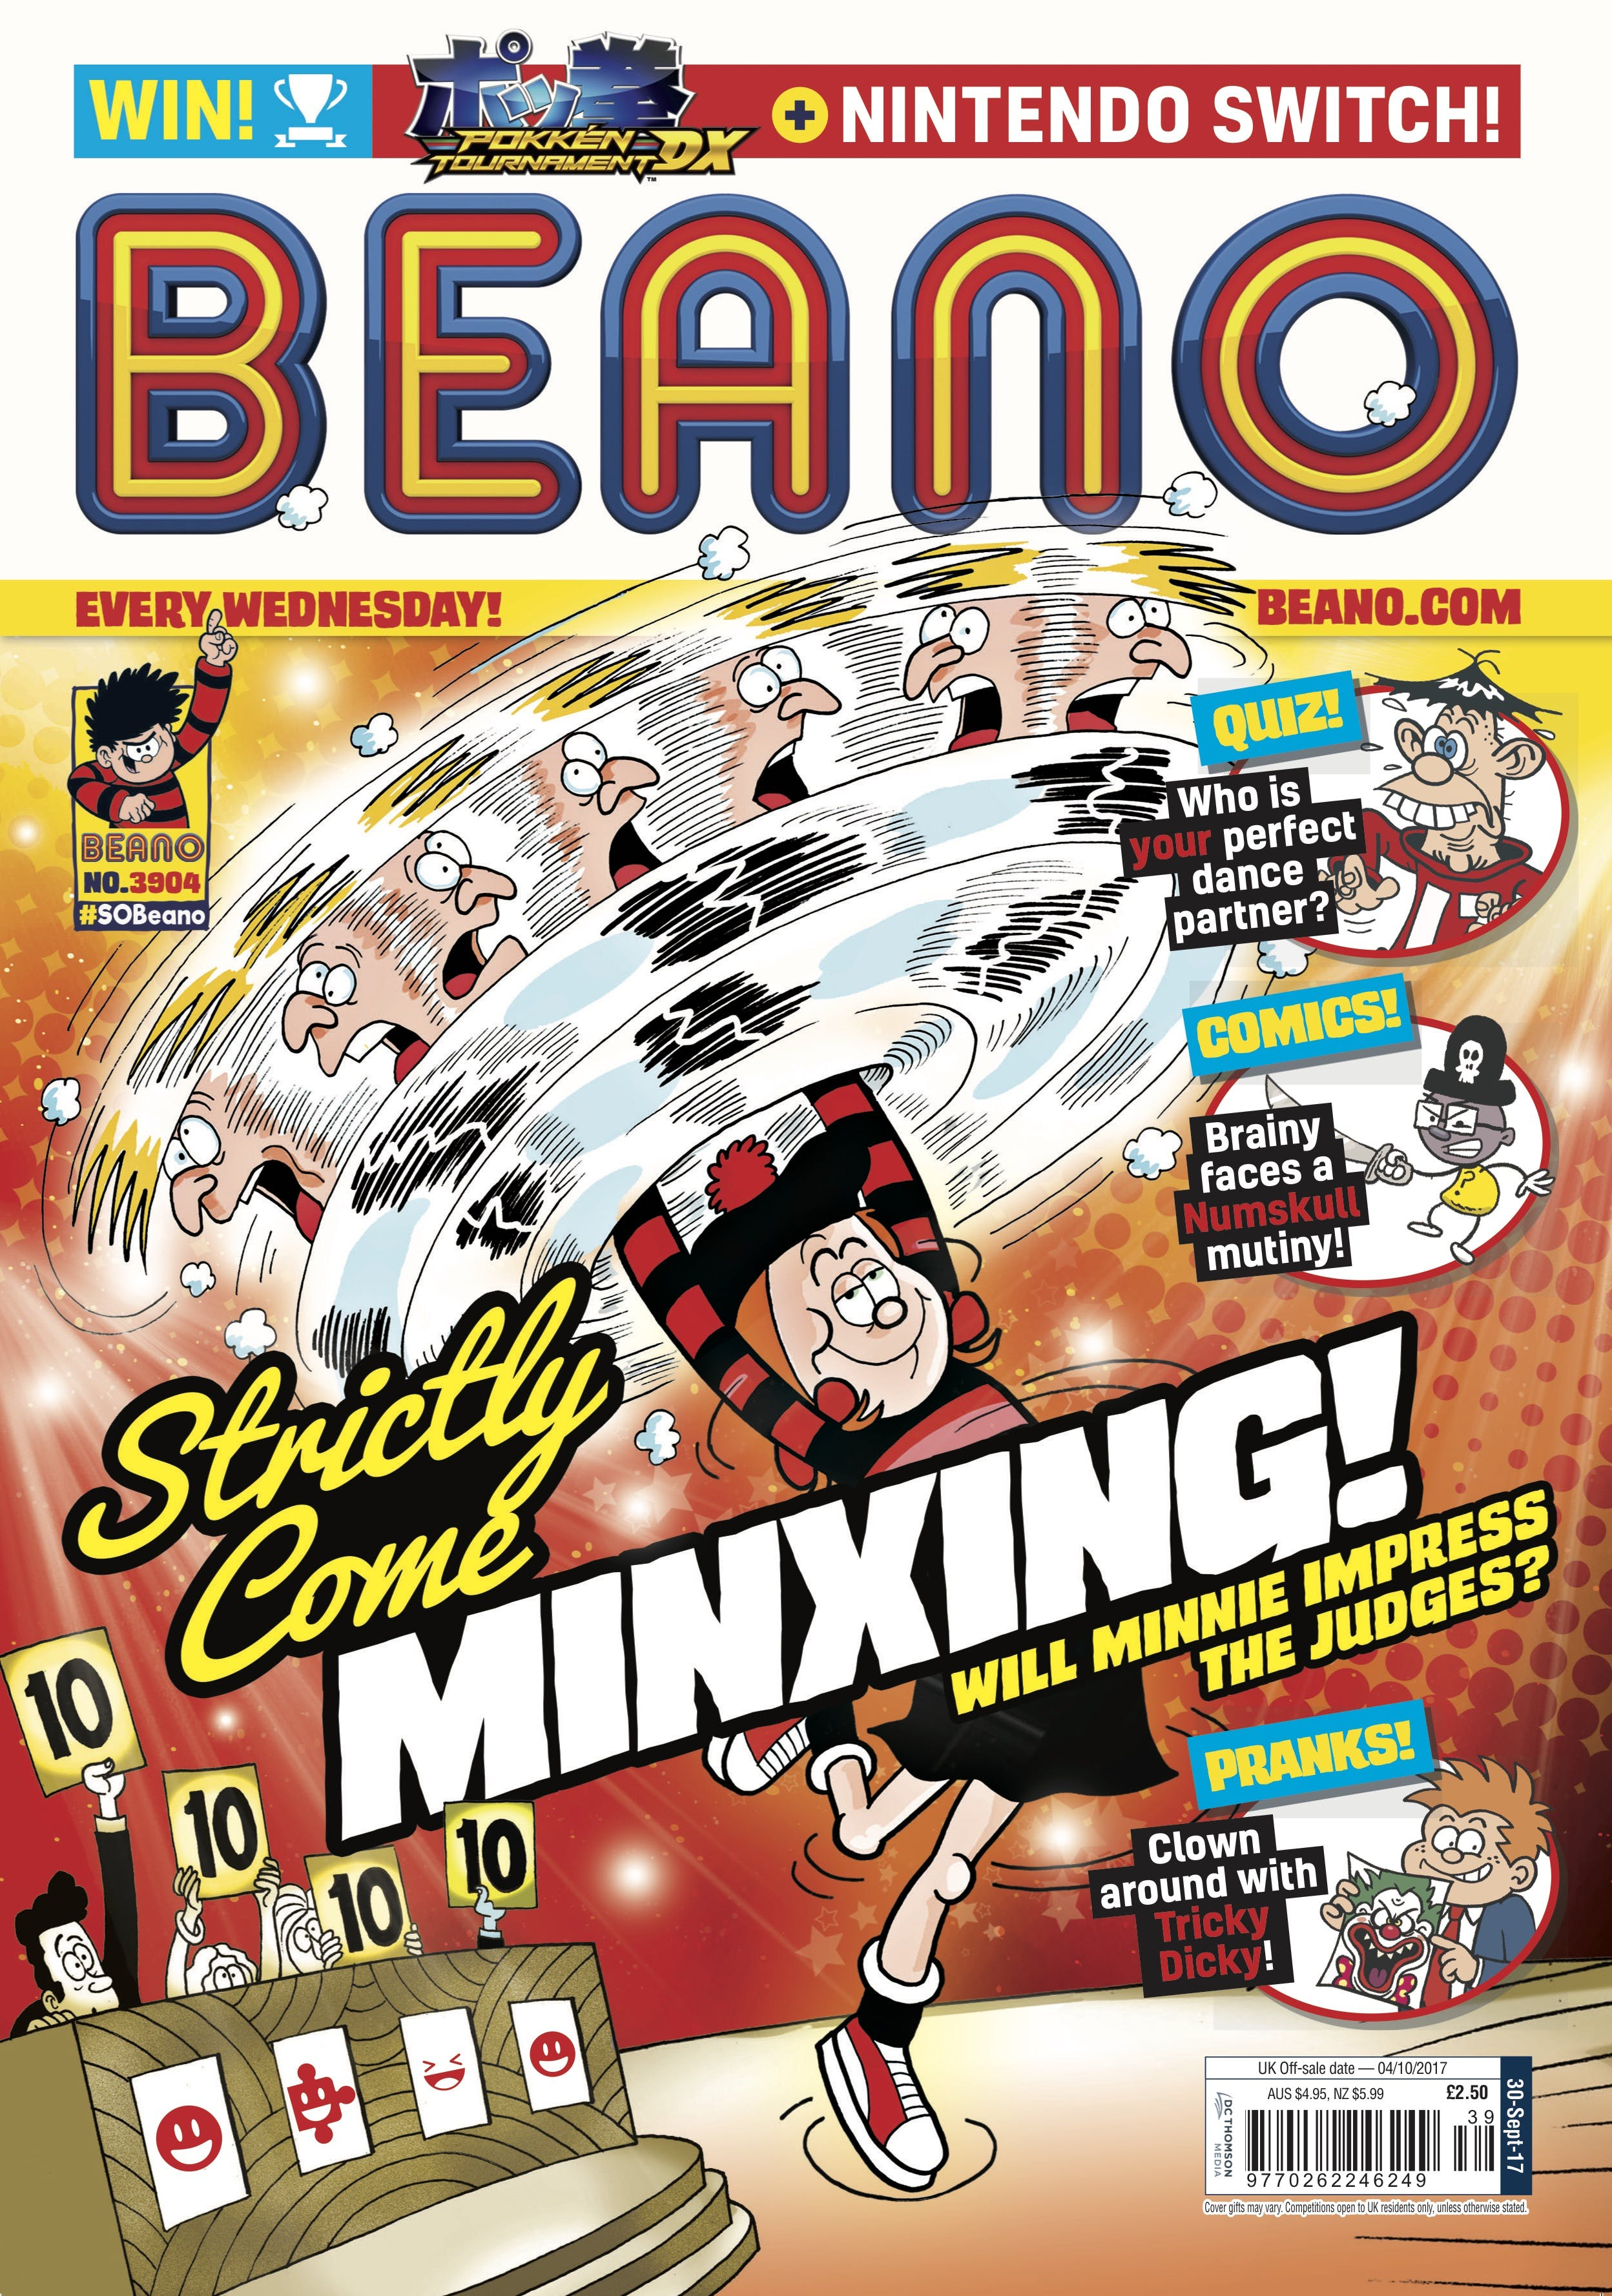 The cover of Beano No. 3904, issue dated 30th September 2017